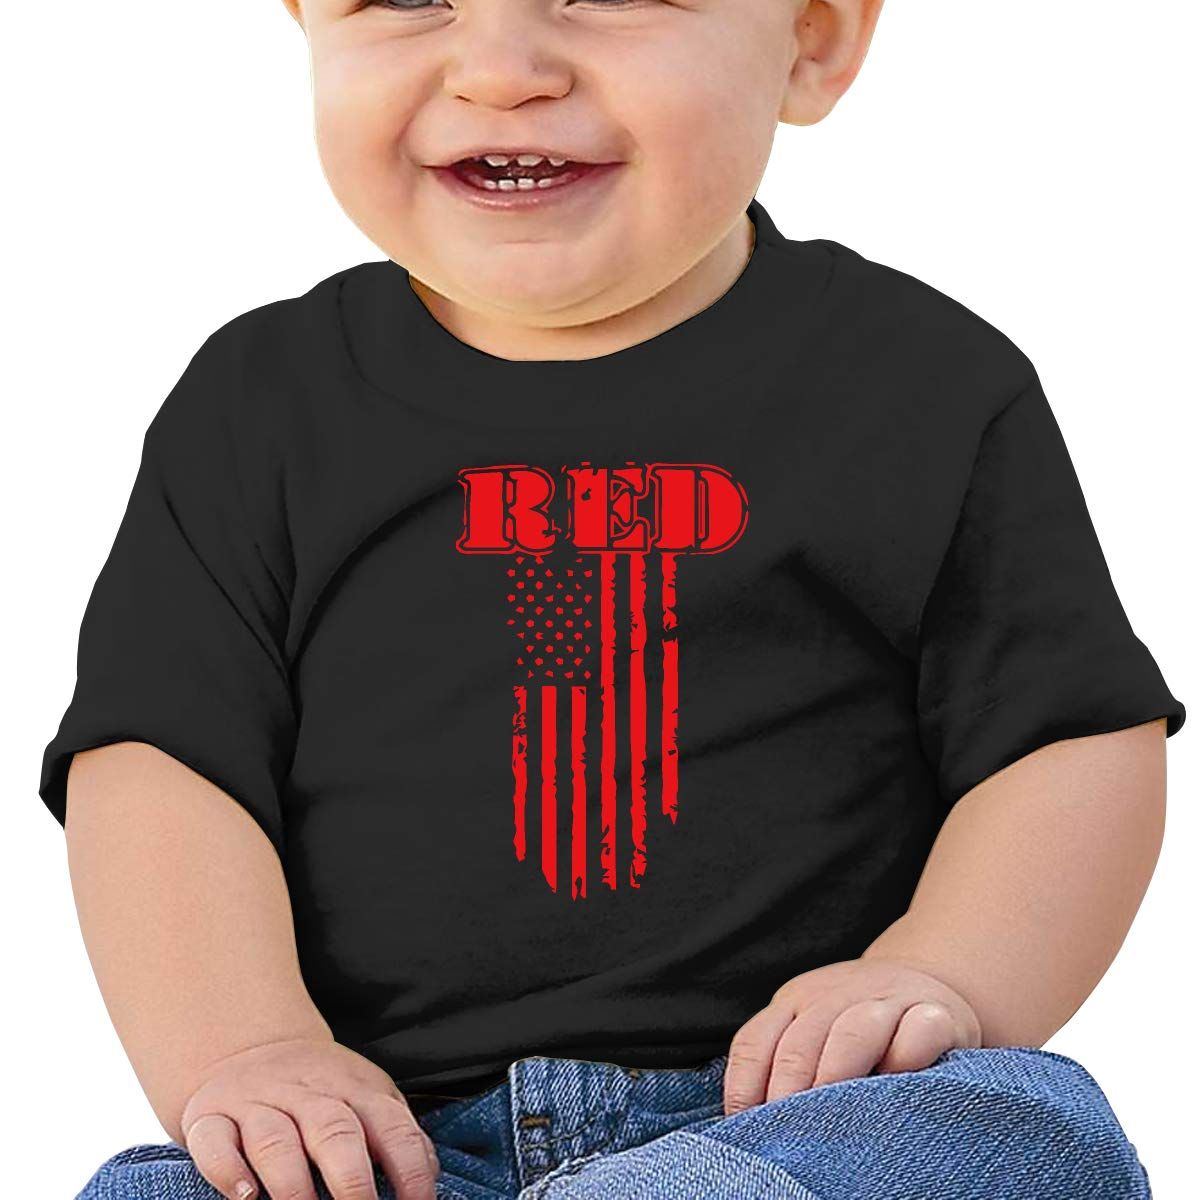 Remember Everyone Deployed Red Friday Baby Boys Girls Short Sleeve Crewneck T-Shirt 6-18 Month Tops